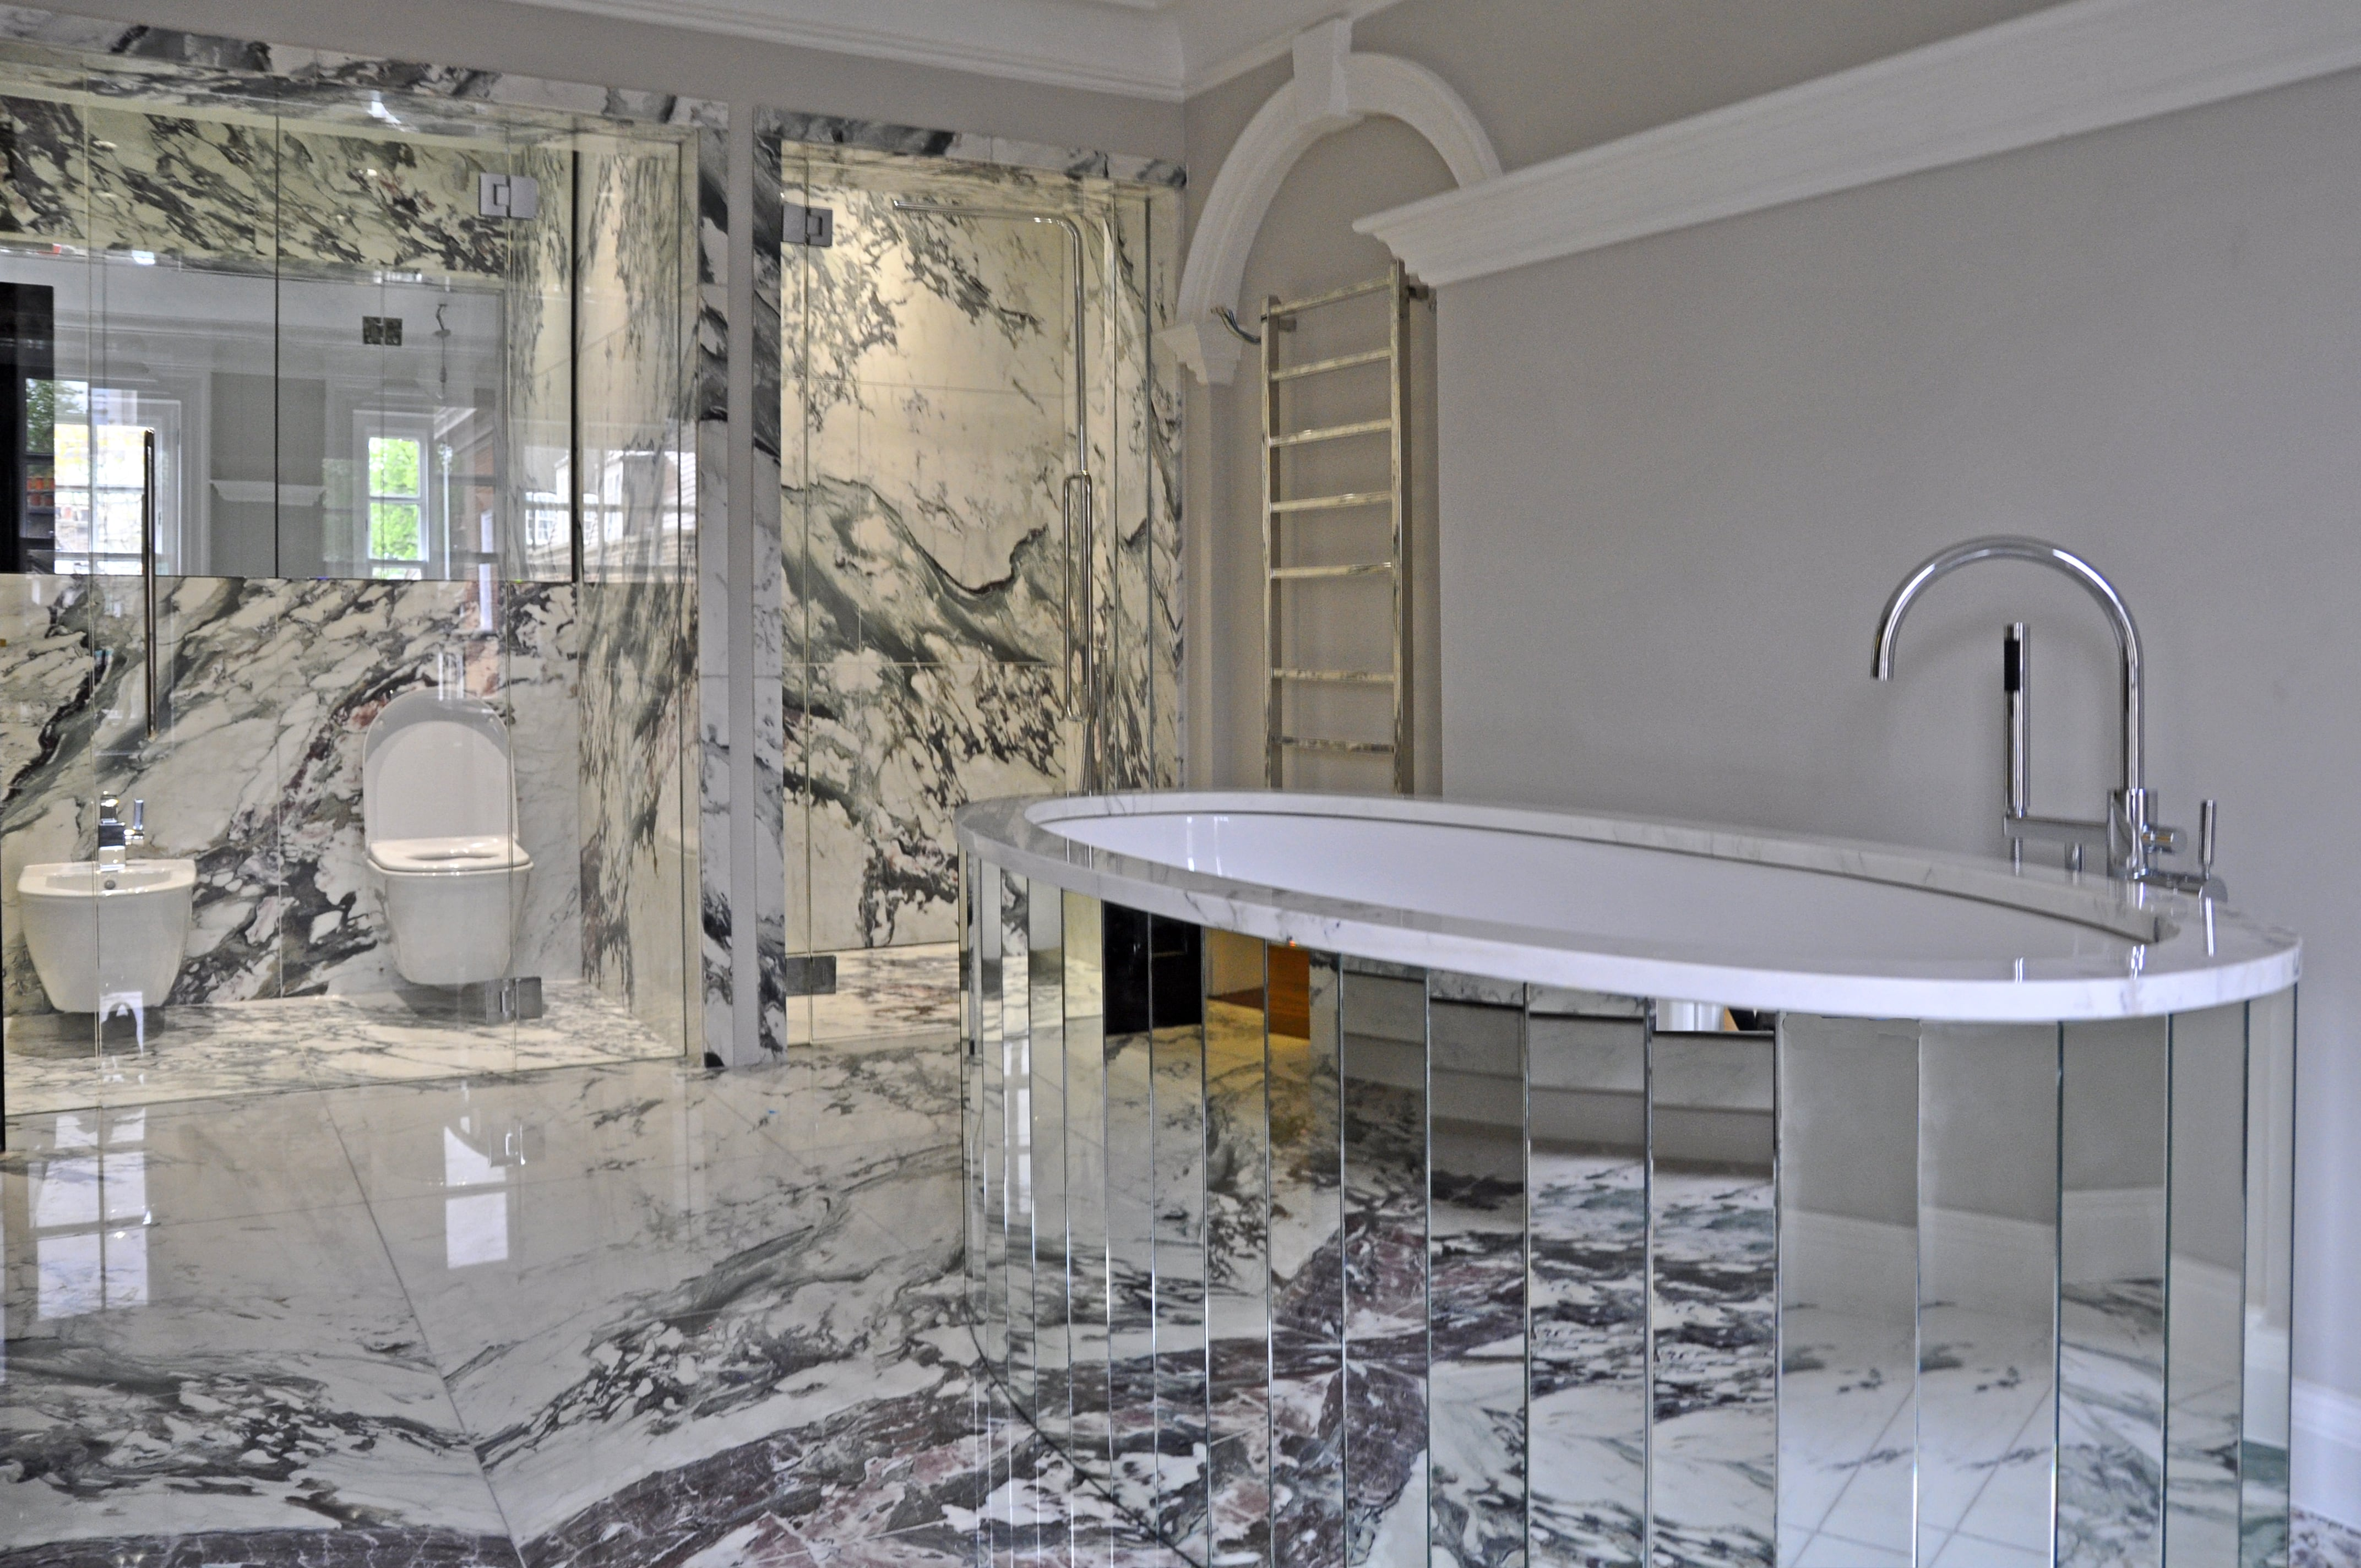 white marble tiles modern bathroom mirrored tile bathtub image no people photograph photography long smart well organised colour wealth